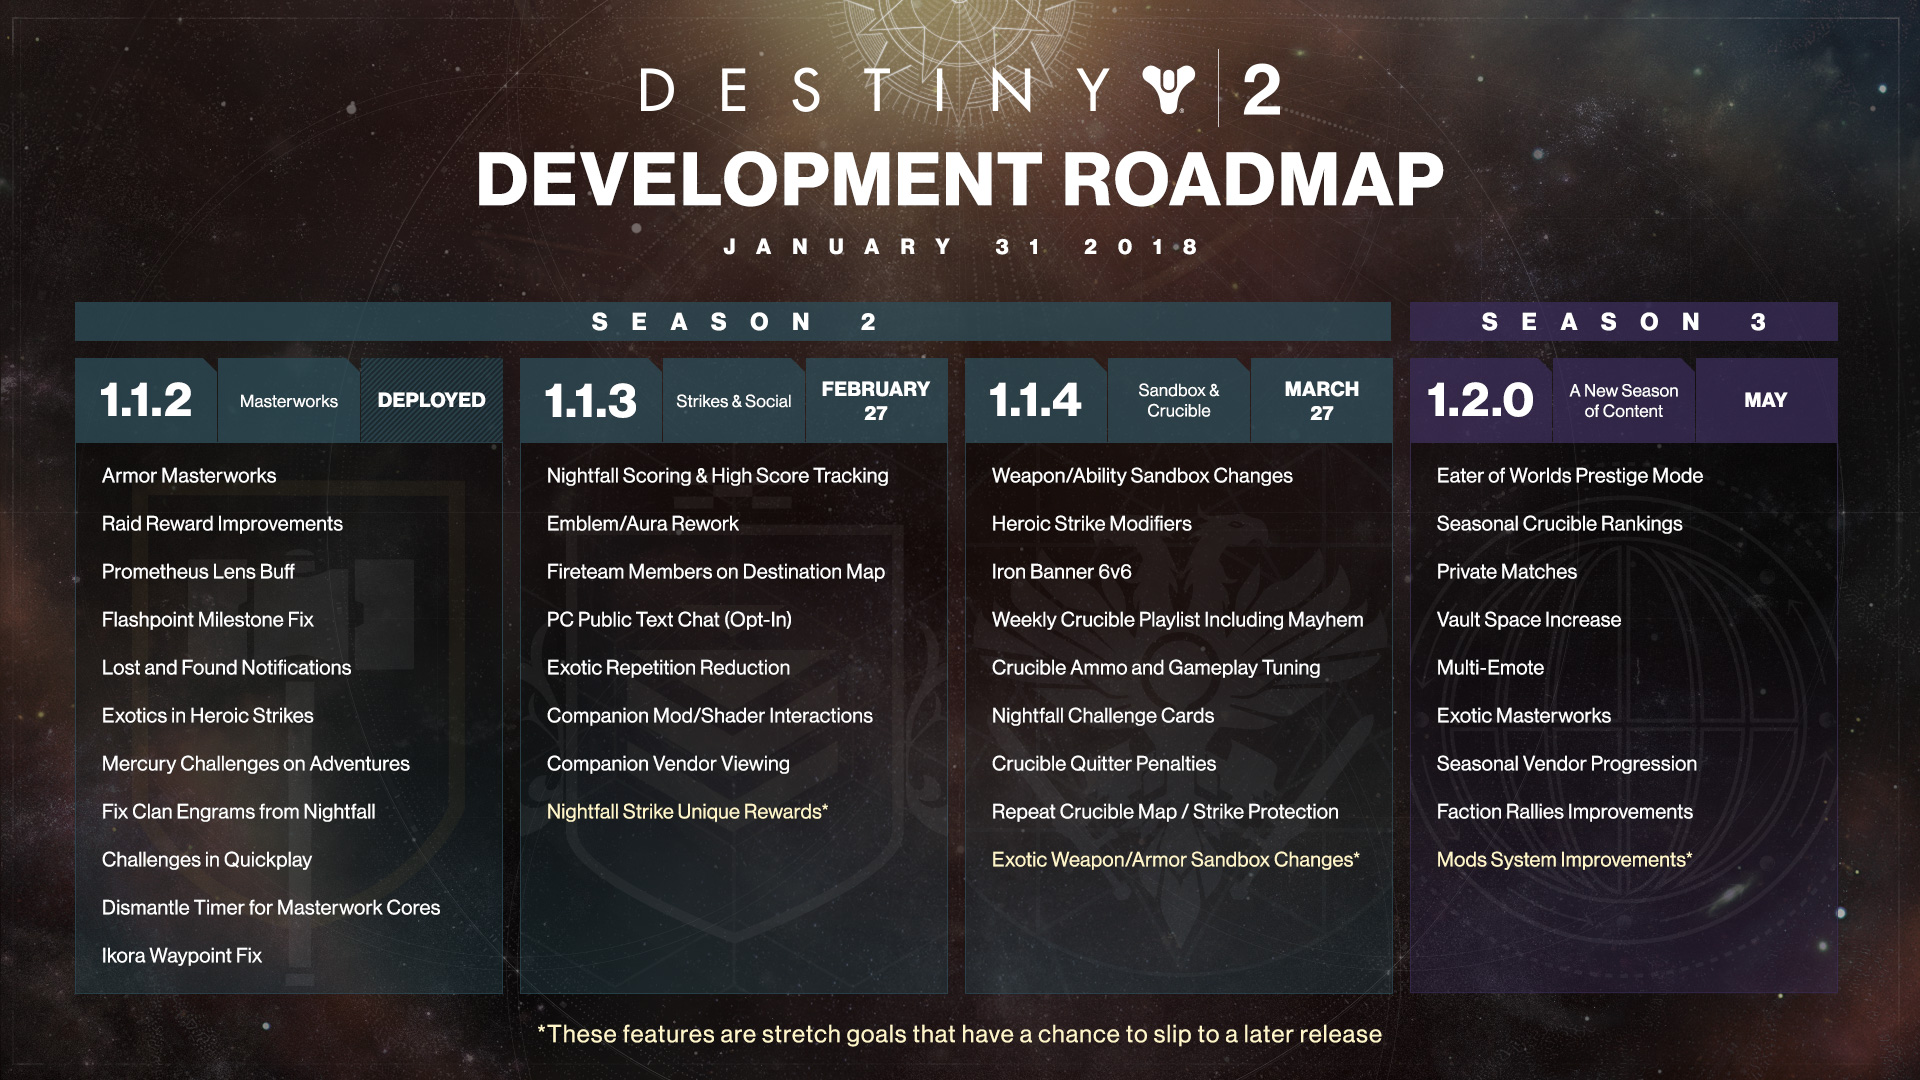 Destiny 2 updated development schedule released